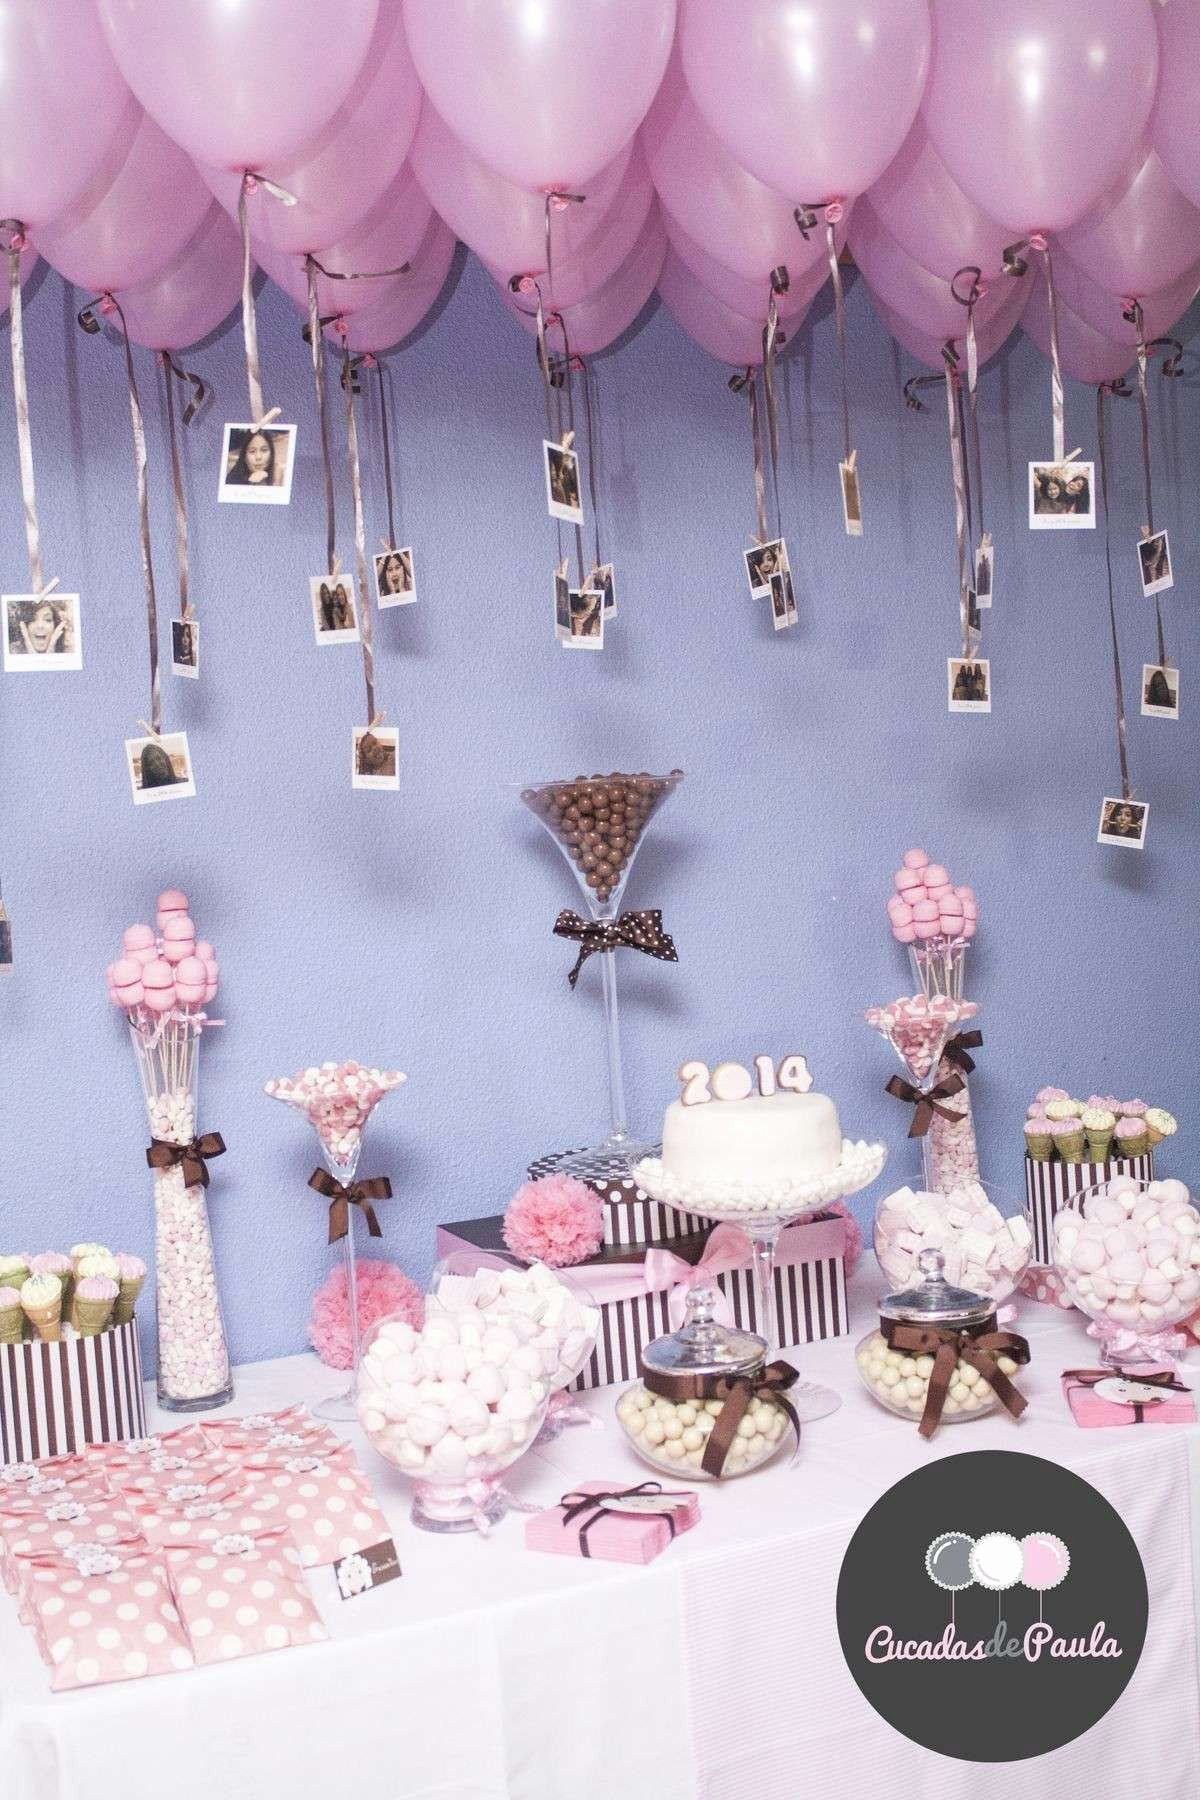 Latest Birthday Decoration Ideas at Home Fresh Awesome First Birthday Decoration Ideas at Home for Girl